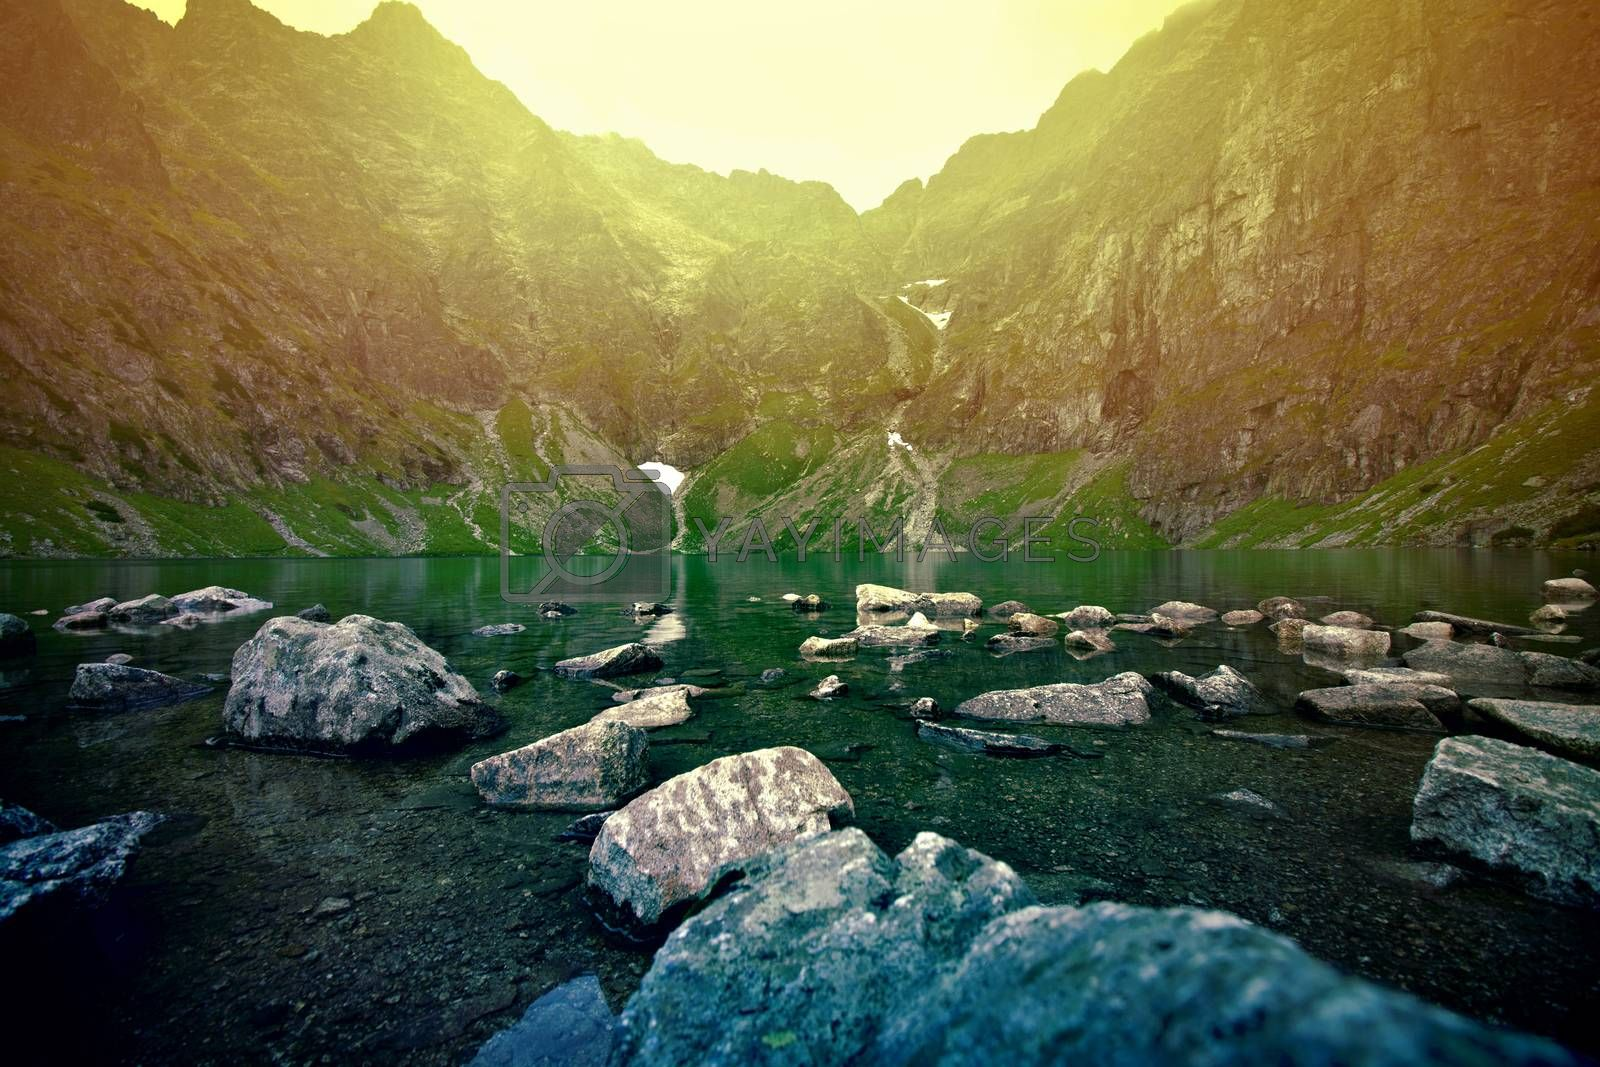 Sunset over lake in mountains. Nature concept.